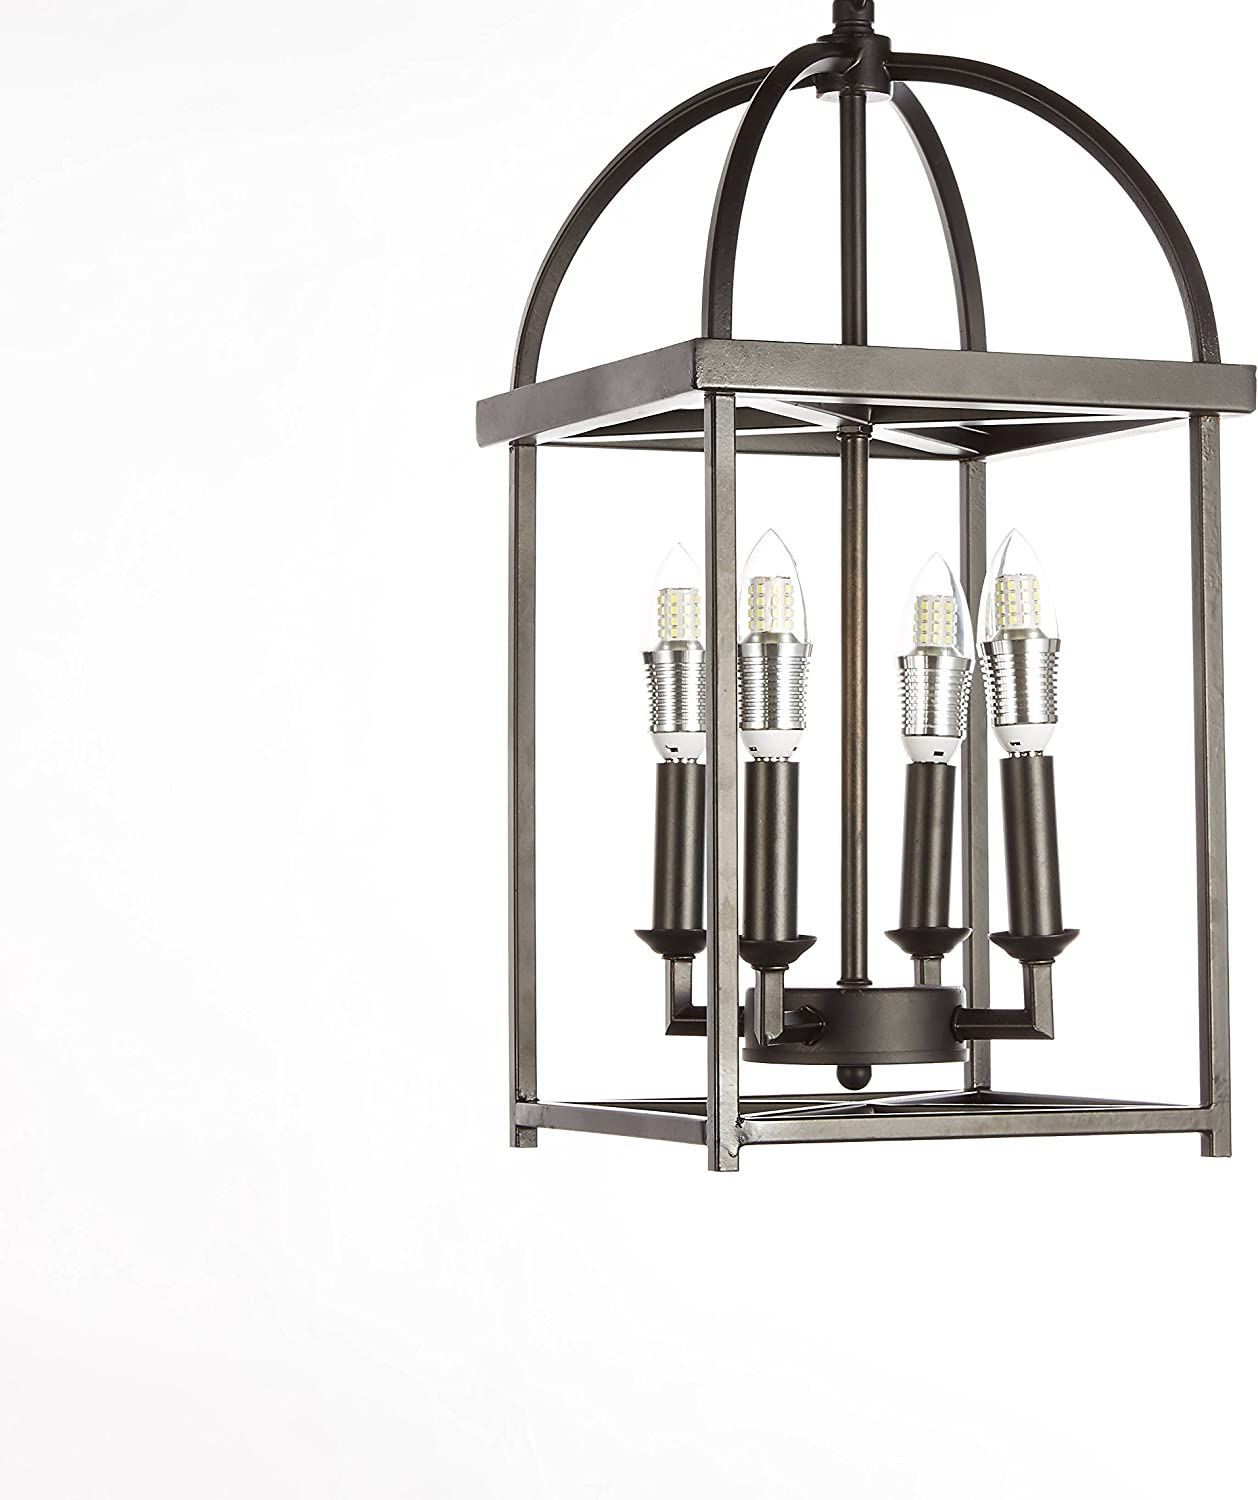 Central Park Industrial Vintage Pendant Lighting, Length 10 inches, Width 7 inches, Height 18 inches, CPH-QSQ-10-L4-BK